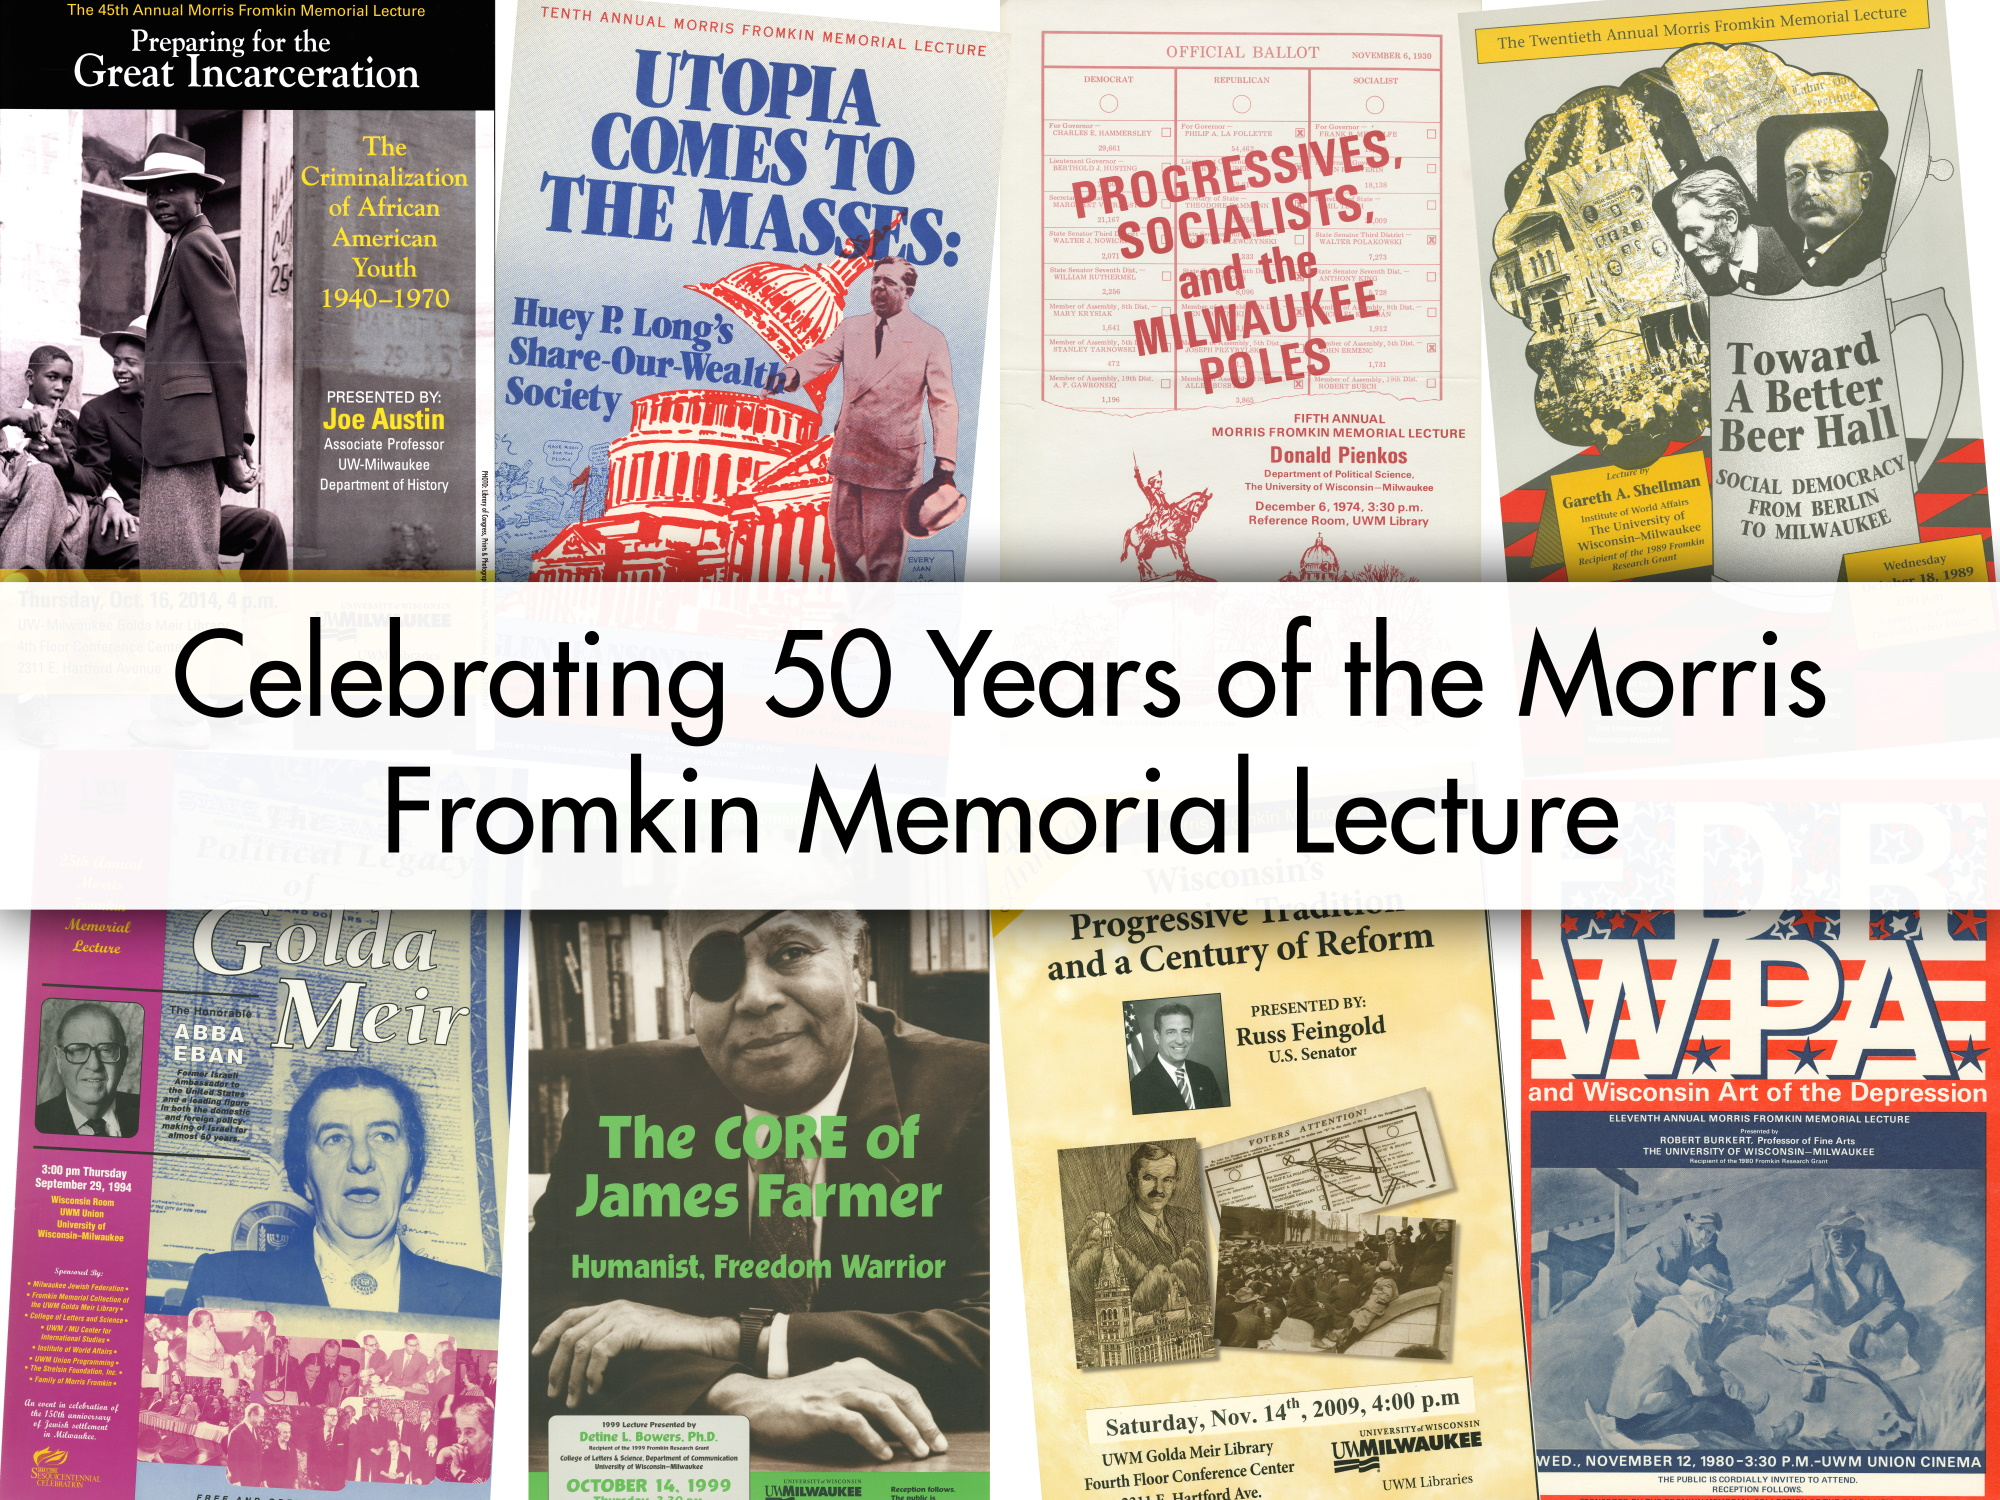 image with text that says Celebrating 50 years of the Morris Fromkin Memorial Lecture